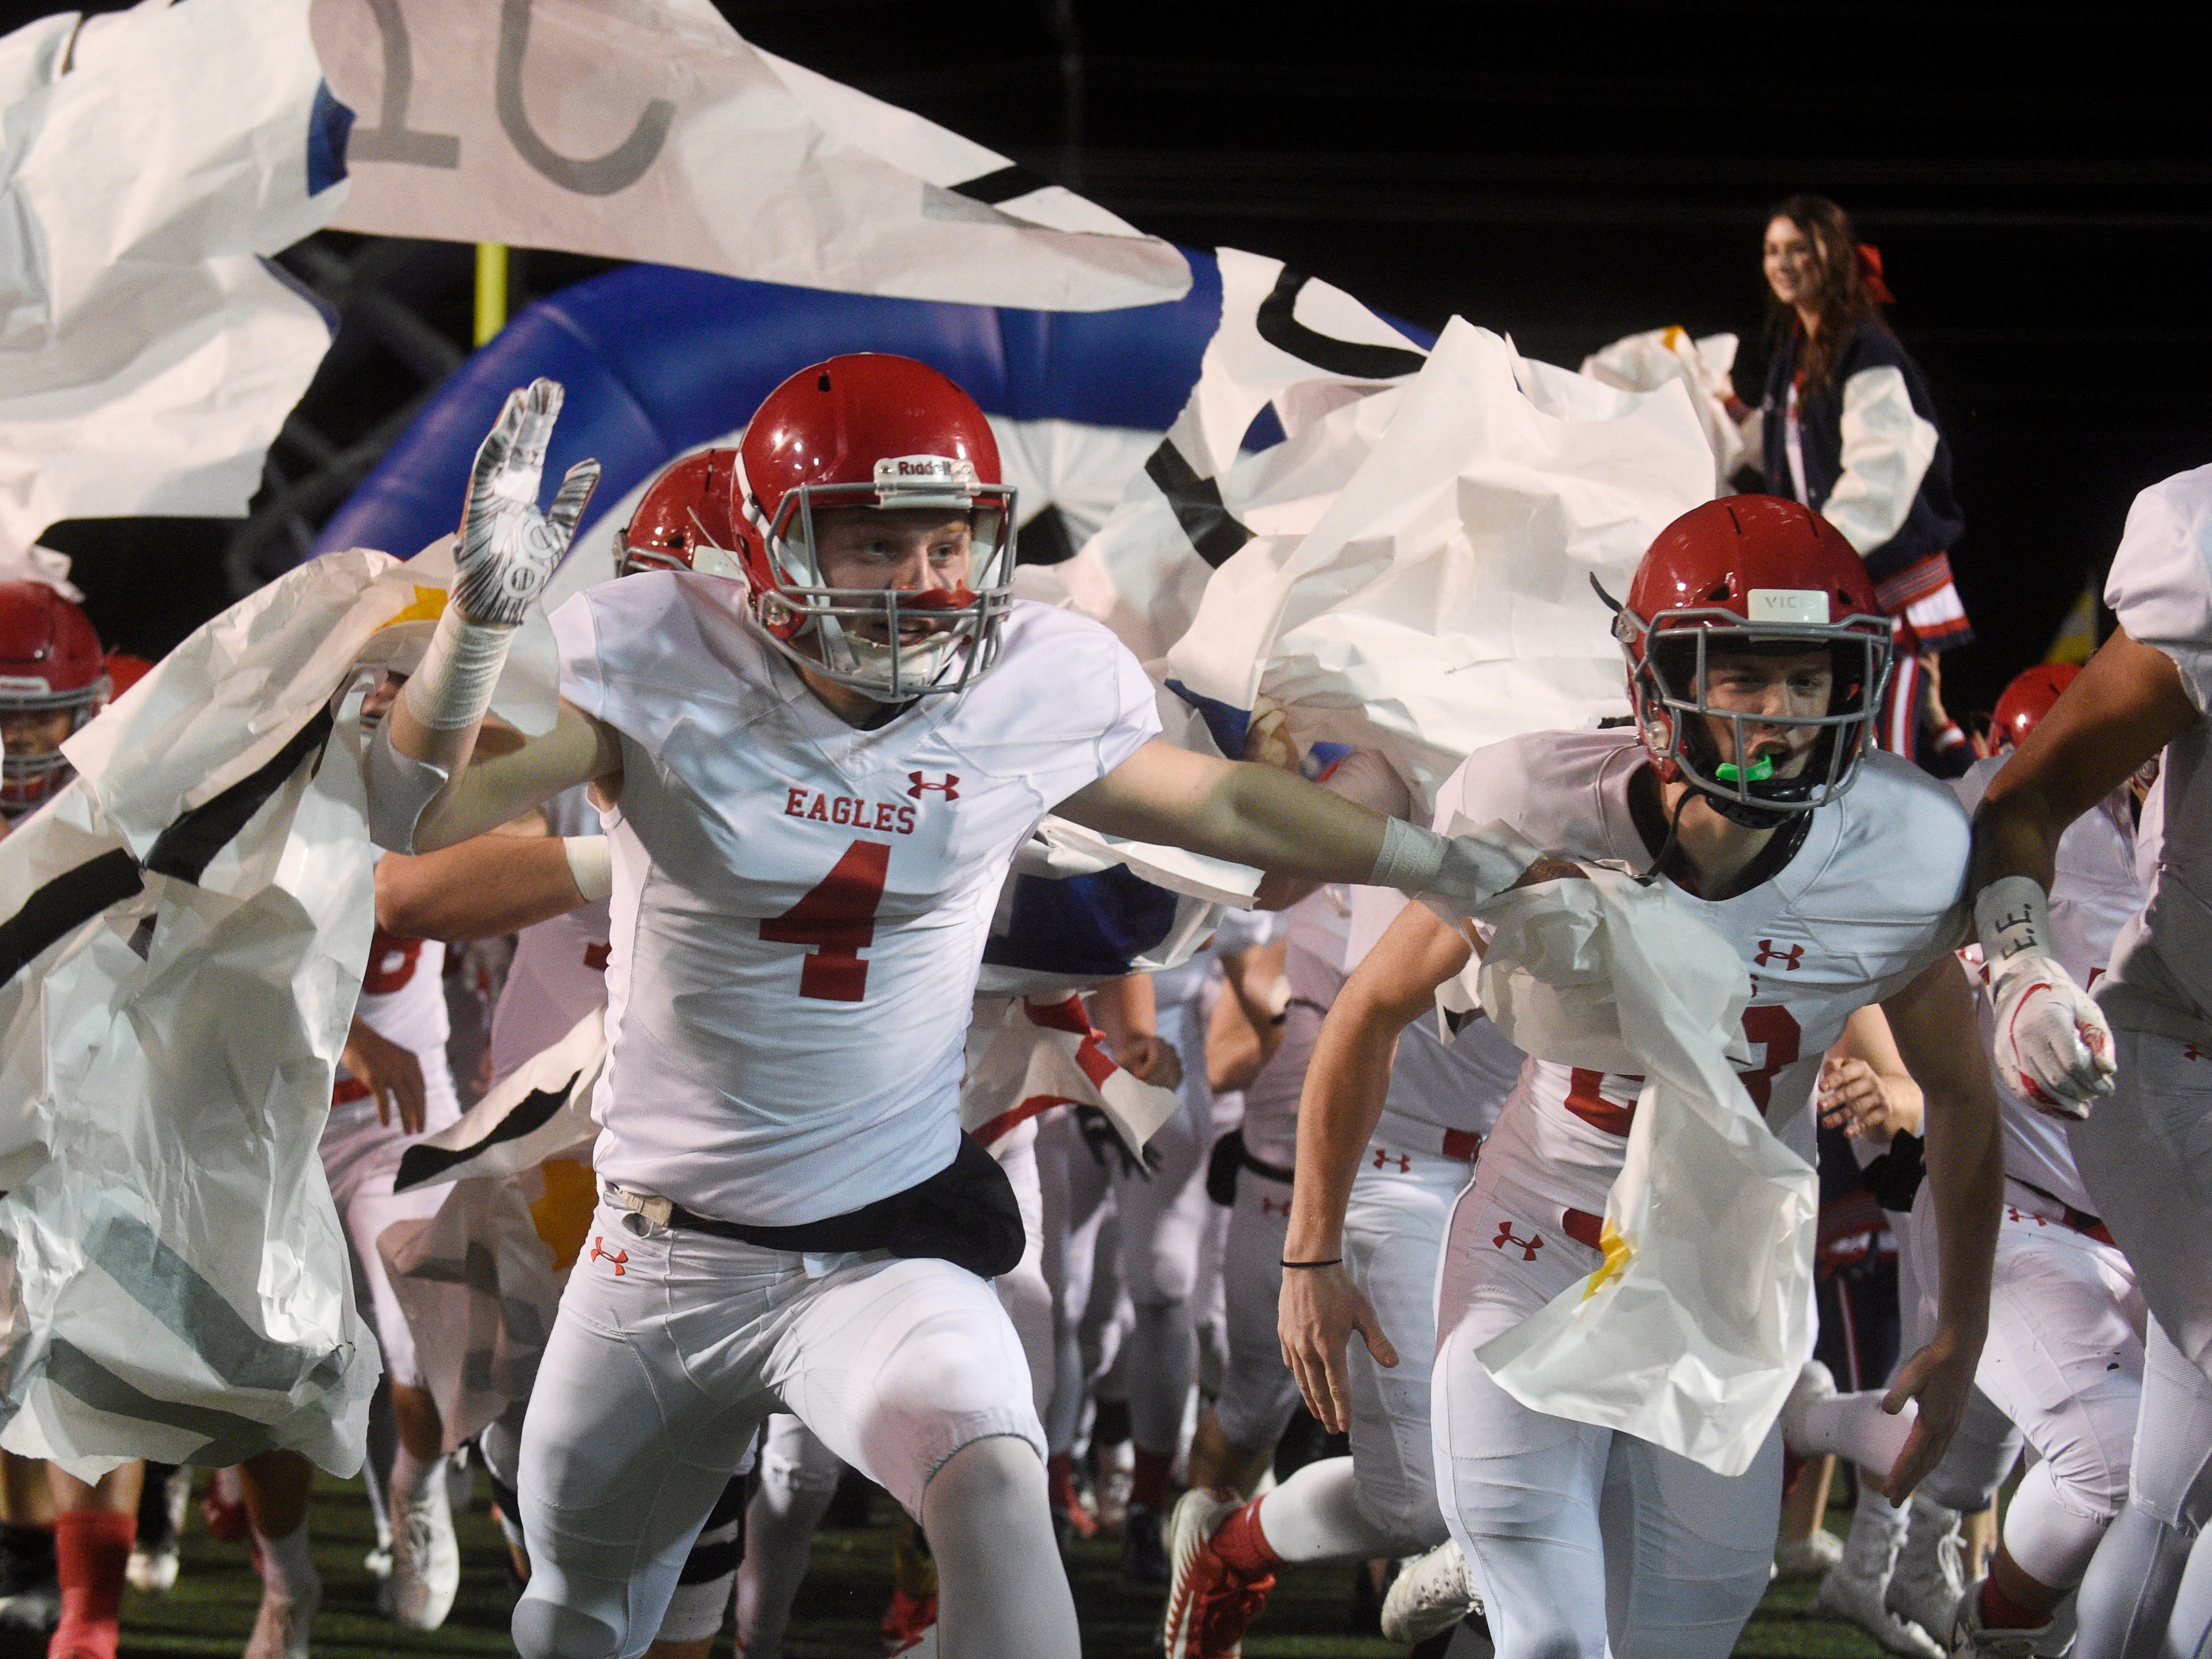 Brentwood Academy linebacker Elijah Oatsvall (4) runs onto the field with his teammates at the start of the Division II-AAA BlueCross Bowl state championship at Tennessee Tech's Tucker Stadium in Cookeville, Tenn., on Friday, Nov. 30, 2018.